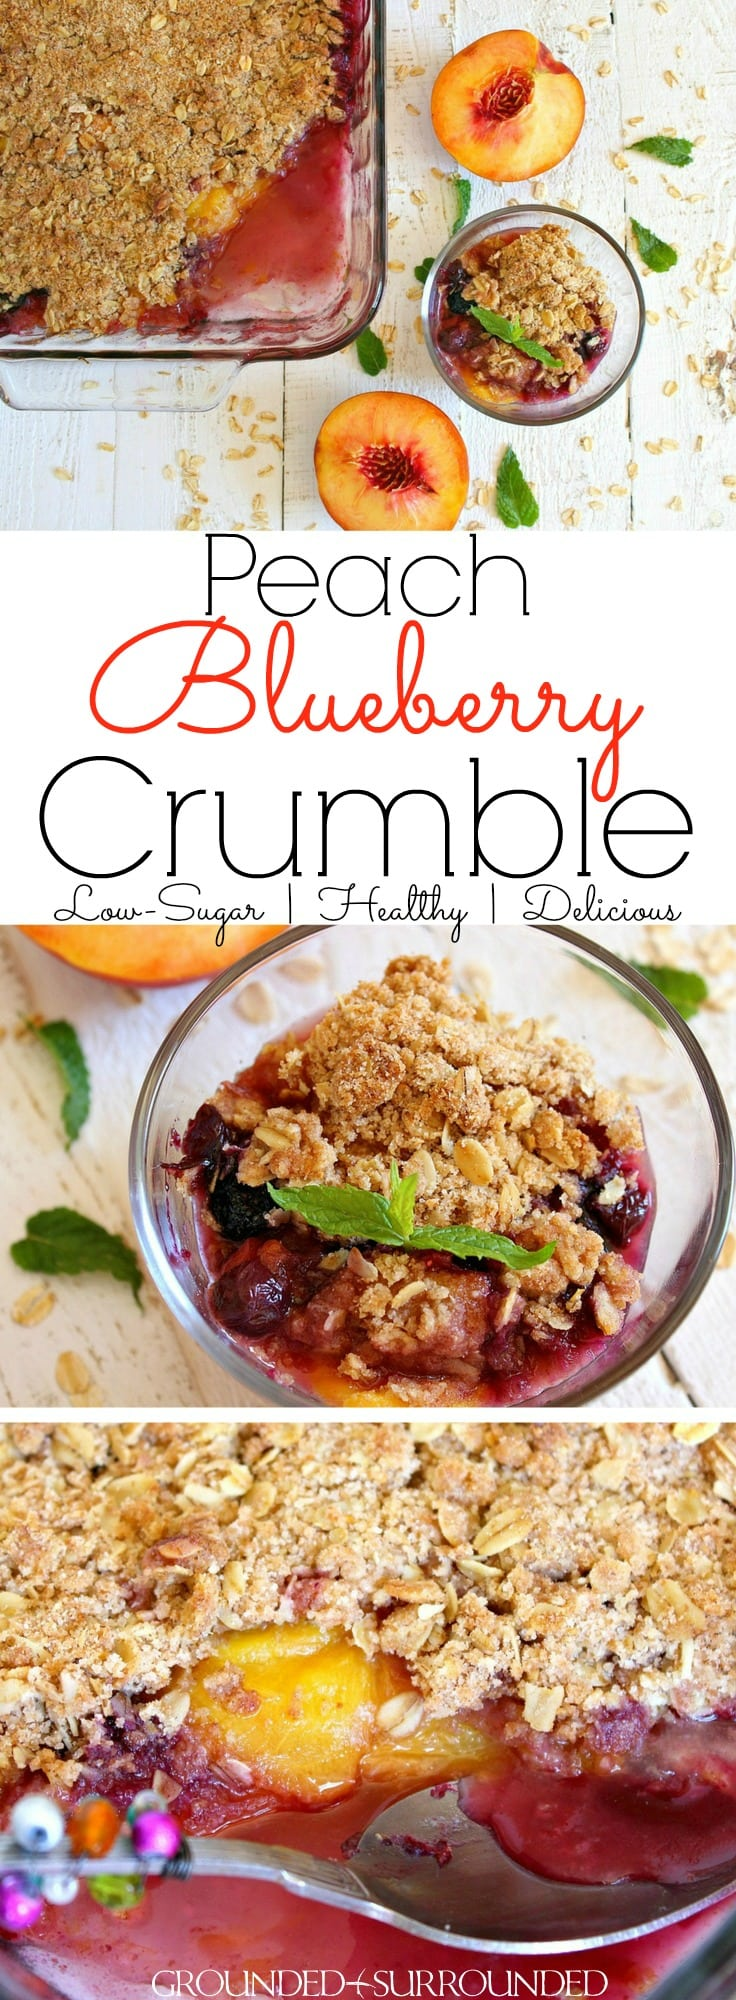 This easy and healthy dessert (it is also delicious for breakfast / brunch) recipe is sure to please your sweet tooth! This crisp can be made gluten-free and refined sugar-free by using almond flour and coconut sugar. Fresh summer recipes like this are always my favorite because you can actually taste the sweetness of the fruit. But don\'t worry this recipe is indulgent and satisfying. Did I mention the butter? ;) #brunch #breakfast #summer